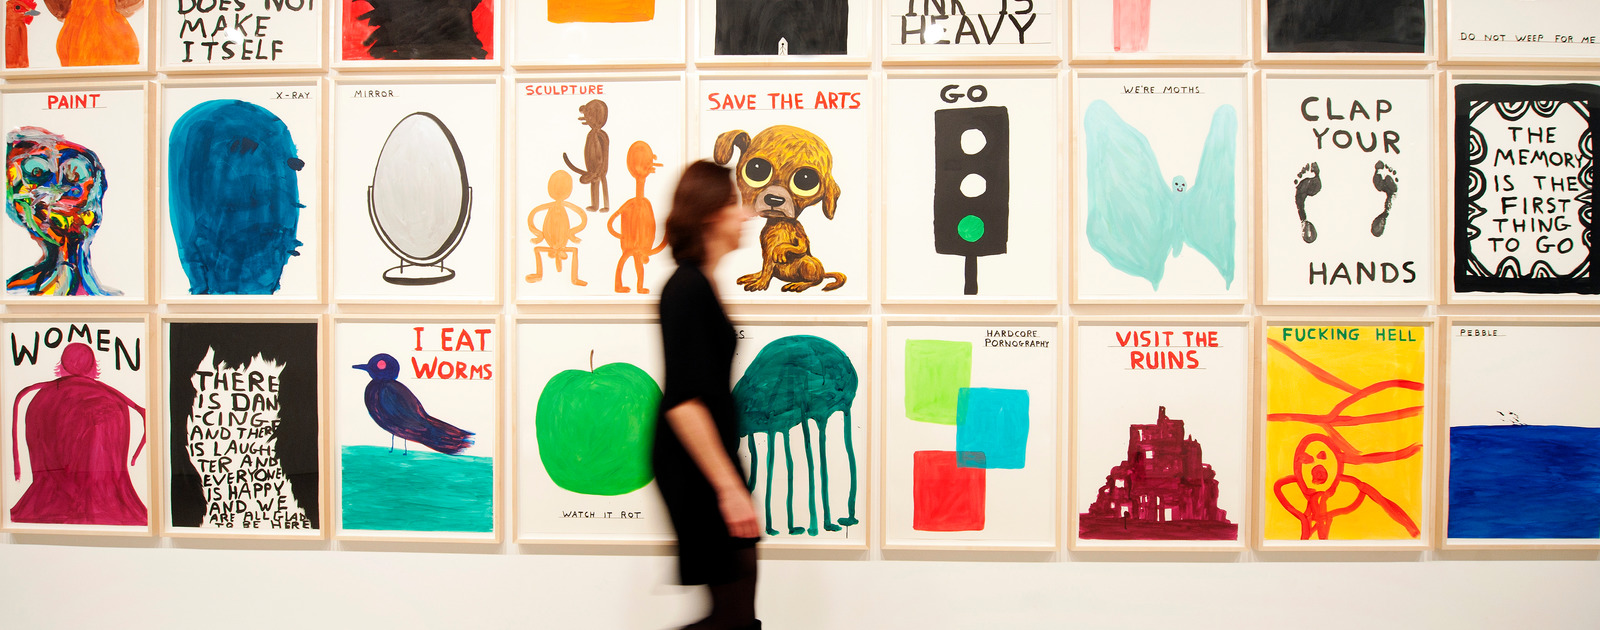 Visitor walking past illustrations by David Shrigley at Hayward Gallery